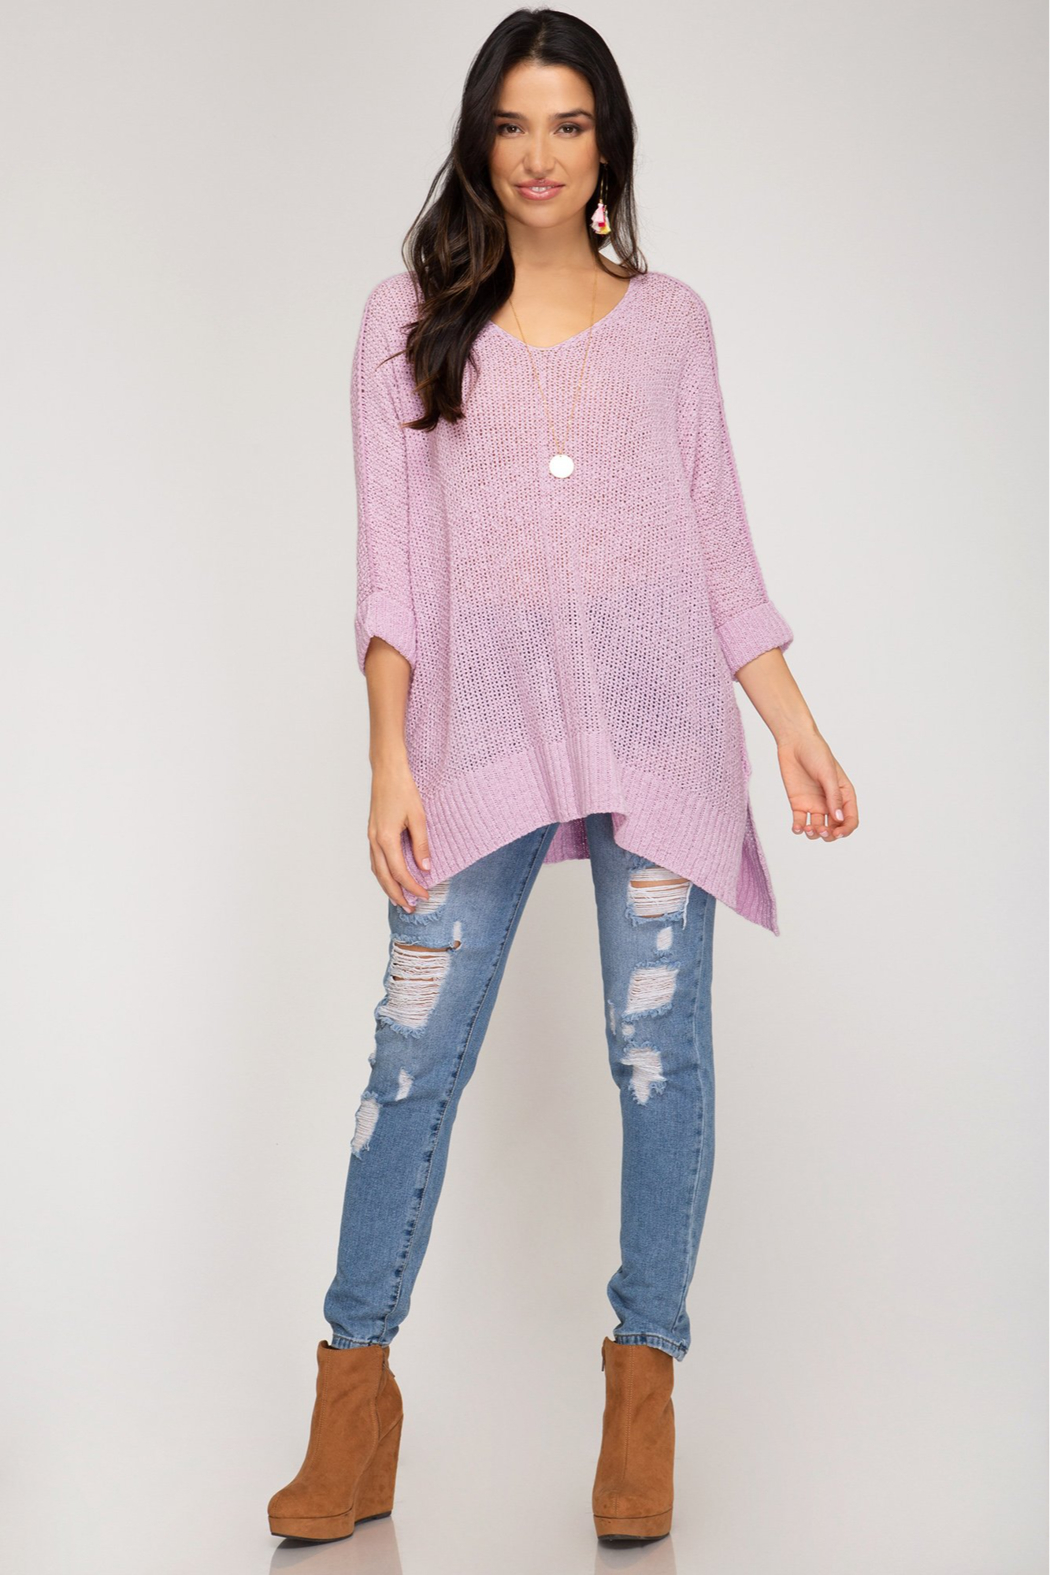 She and Sky 3/4 SLEEVE HILOW KNIT SWEATER TOP - Main Image